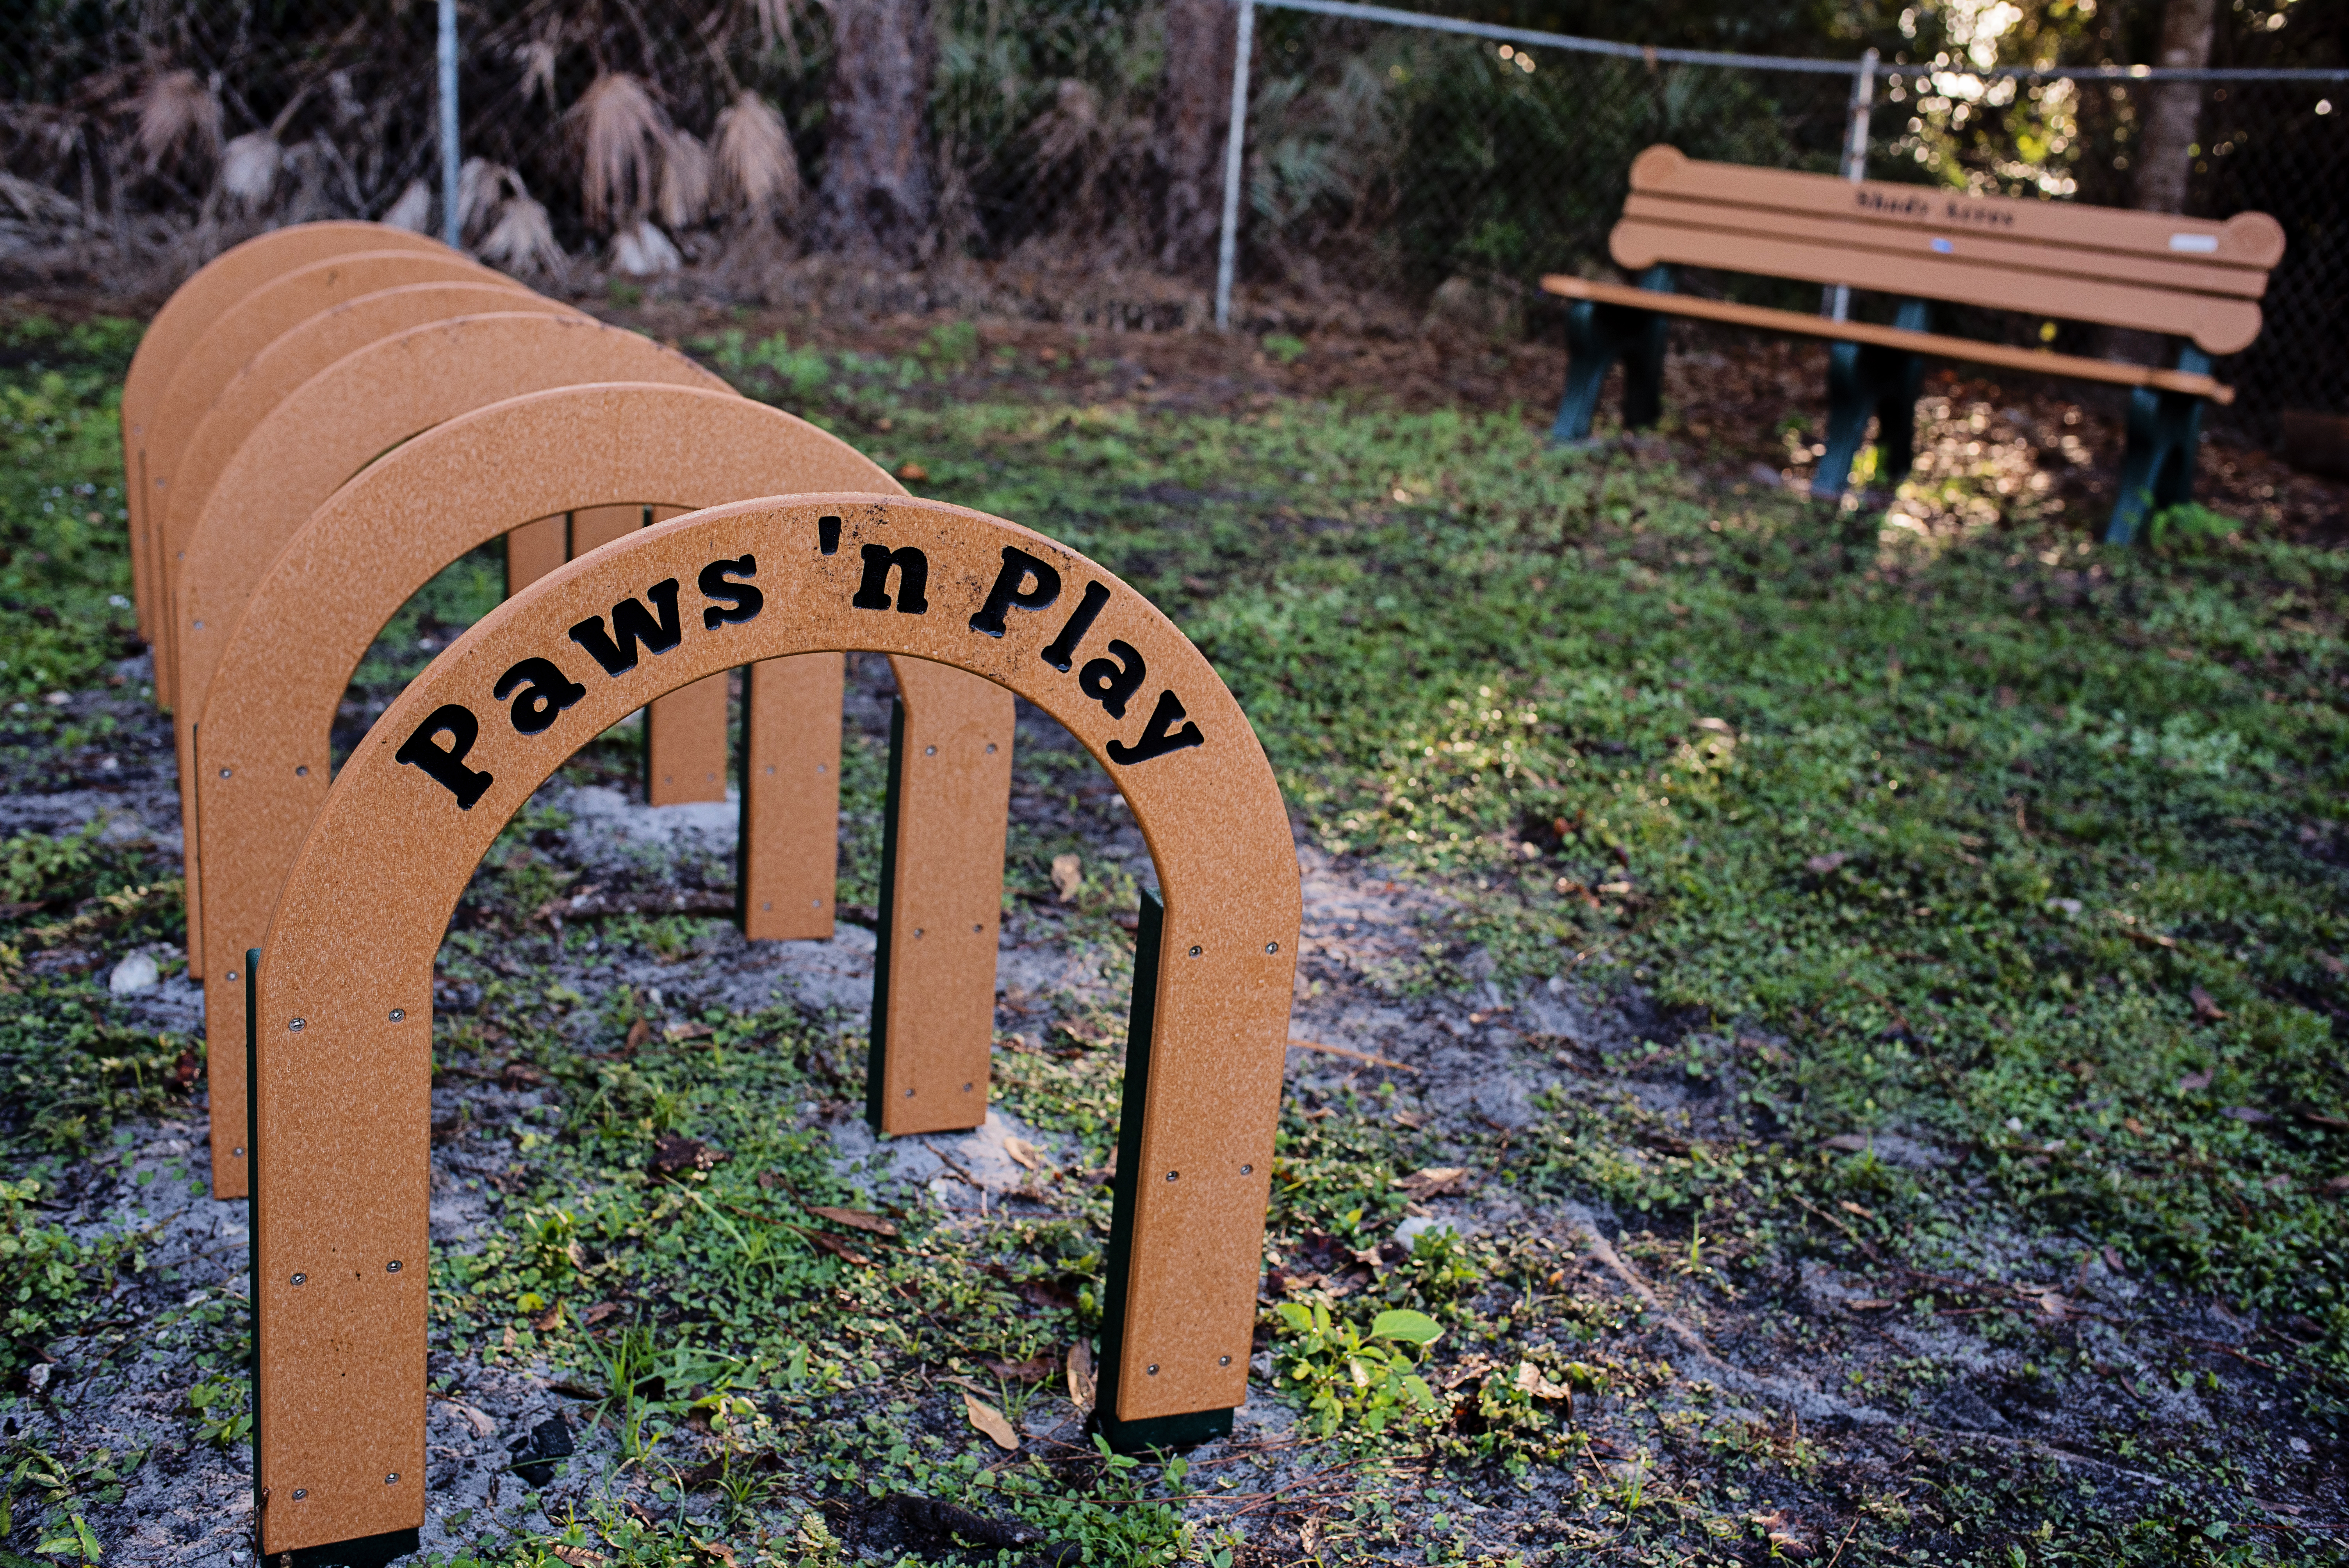 A great play space for your furry family!